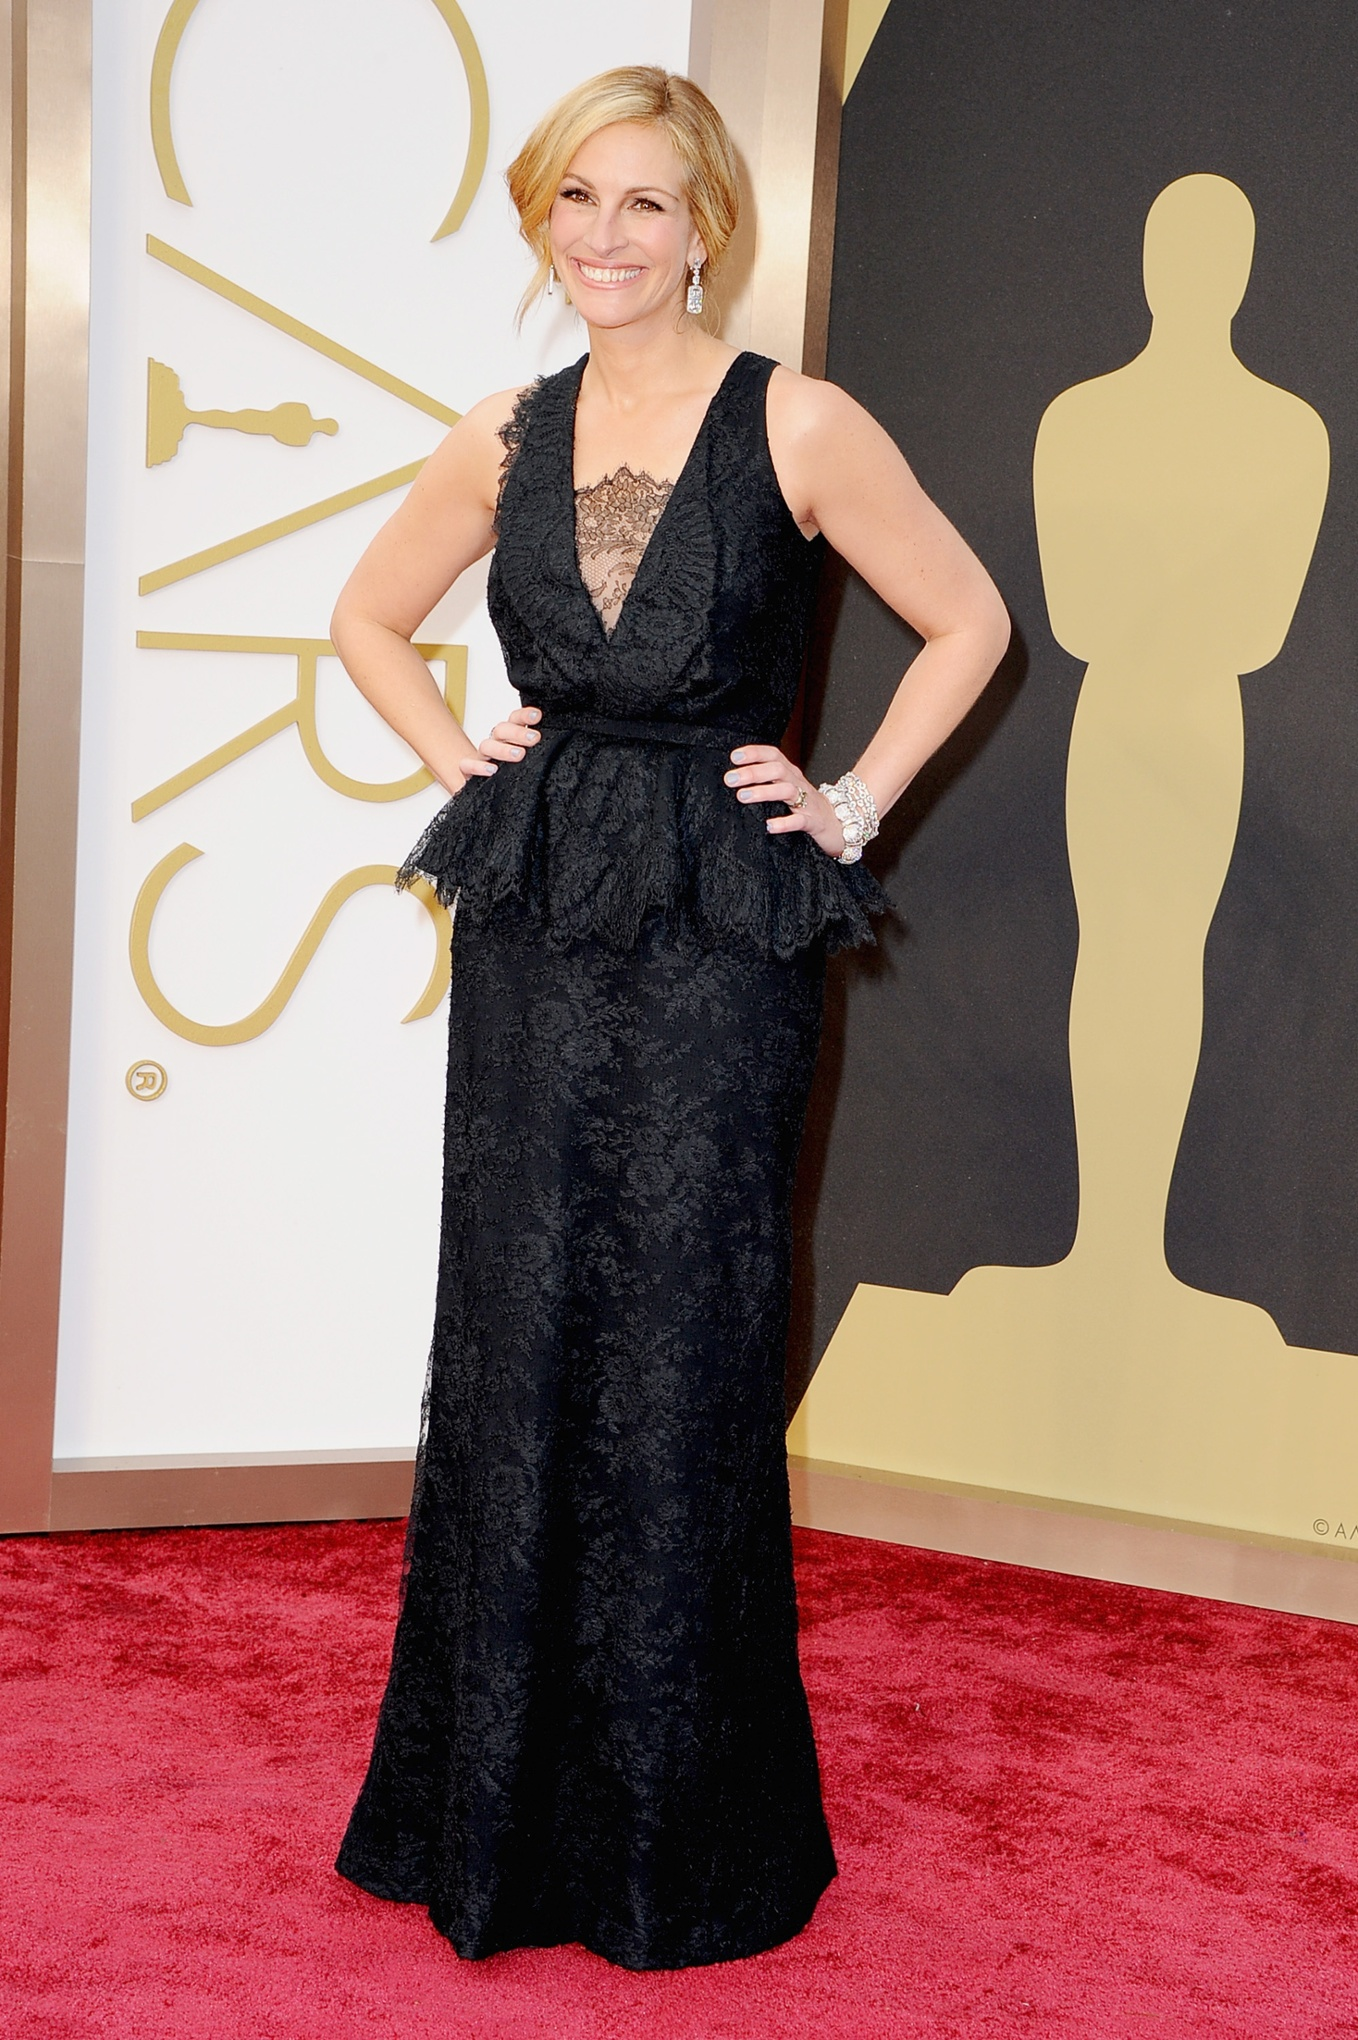 America's Sweetheart Julia Roberts at the 2014 Academy Awards